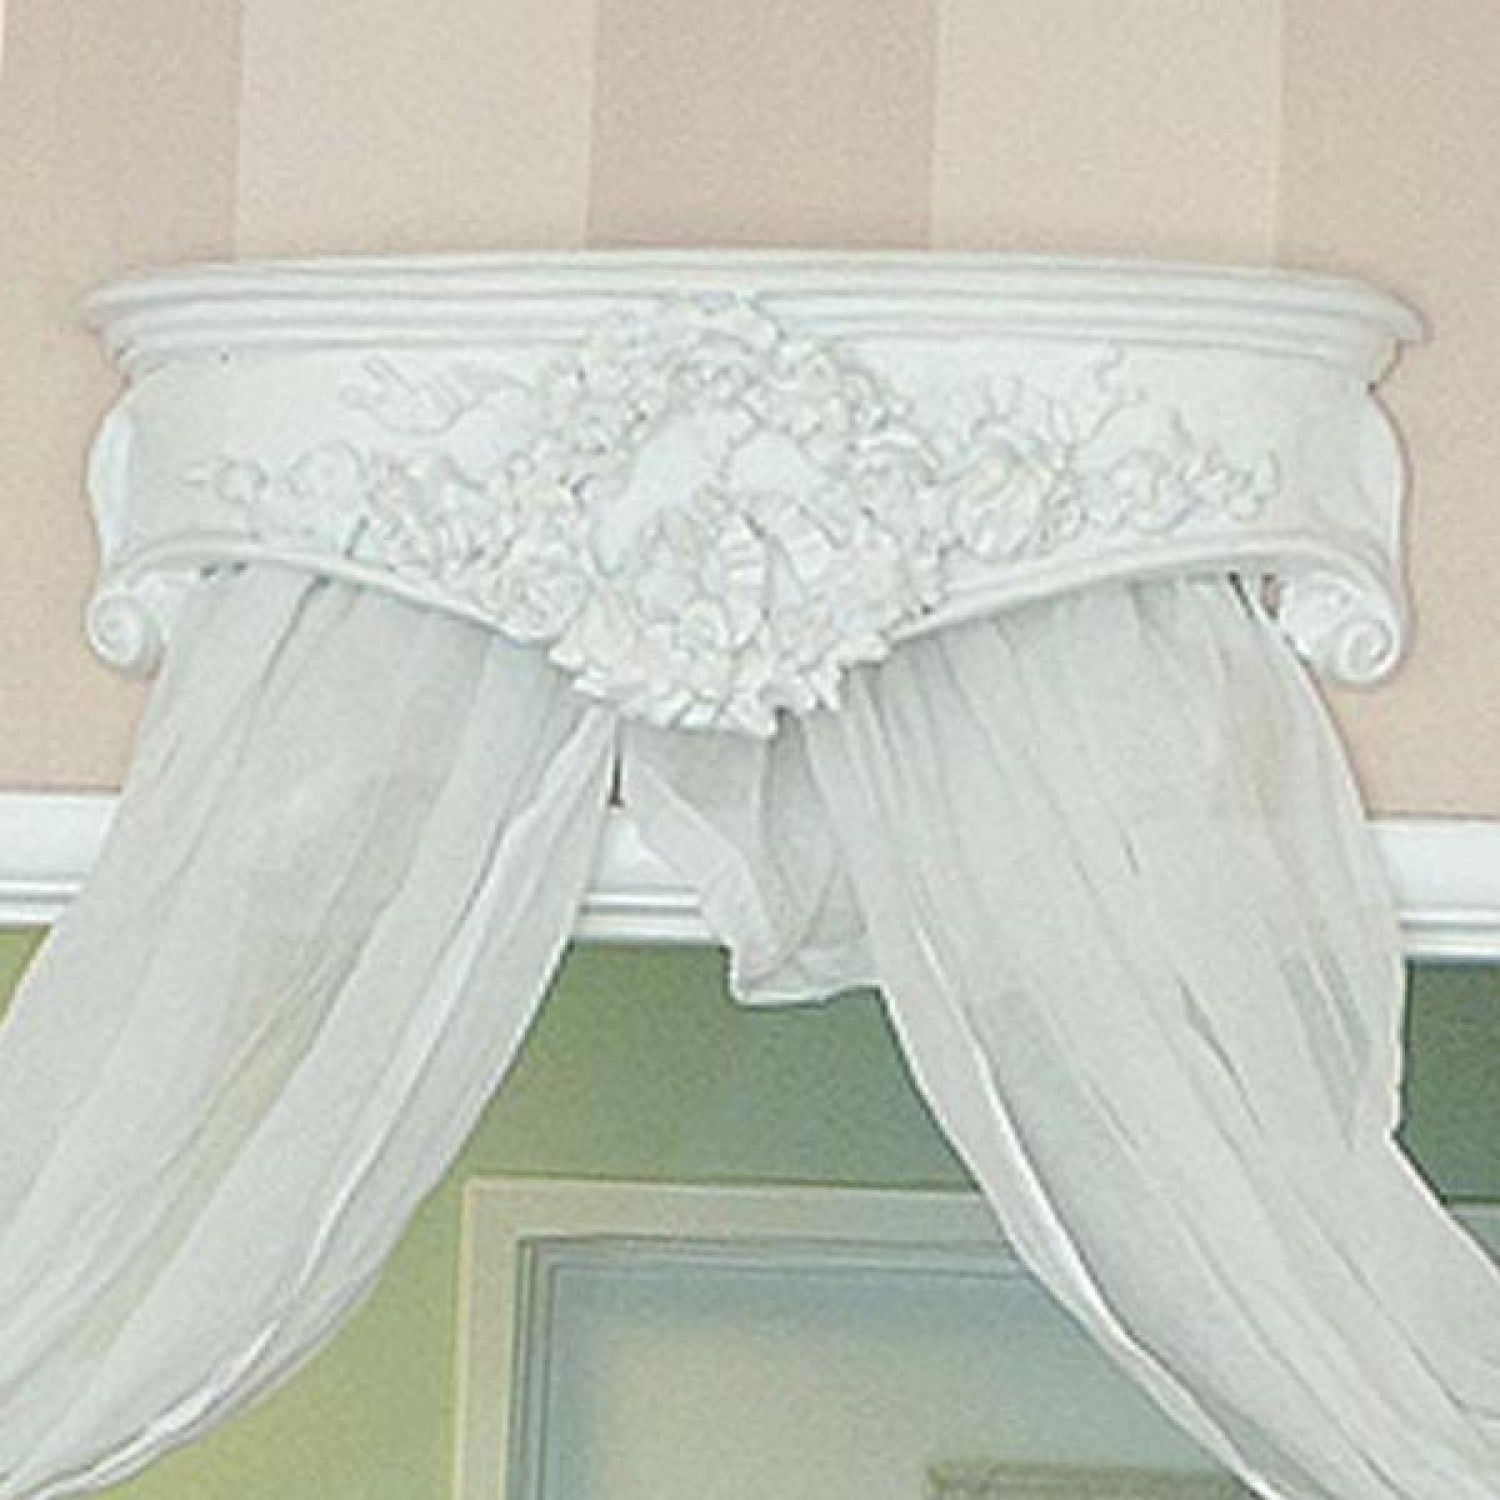 Ornate Corona Bed Crown Canopy $278.00 #thebellacottage #bedroom #shabbychic - Bed Crown Canopy, Crib Crown, Wood Cornice, French Scroll, Bedroom